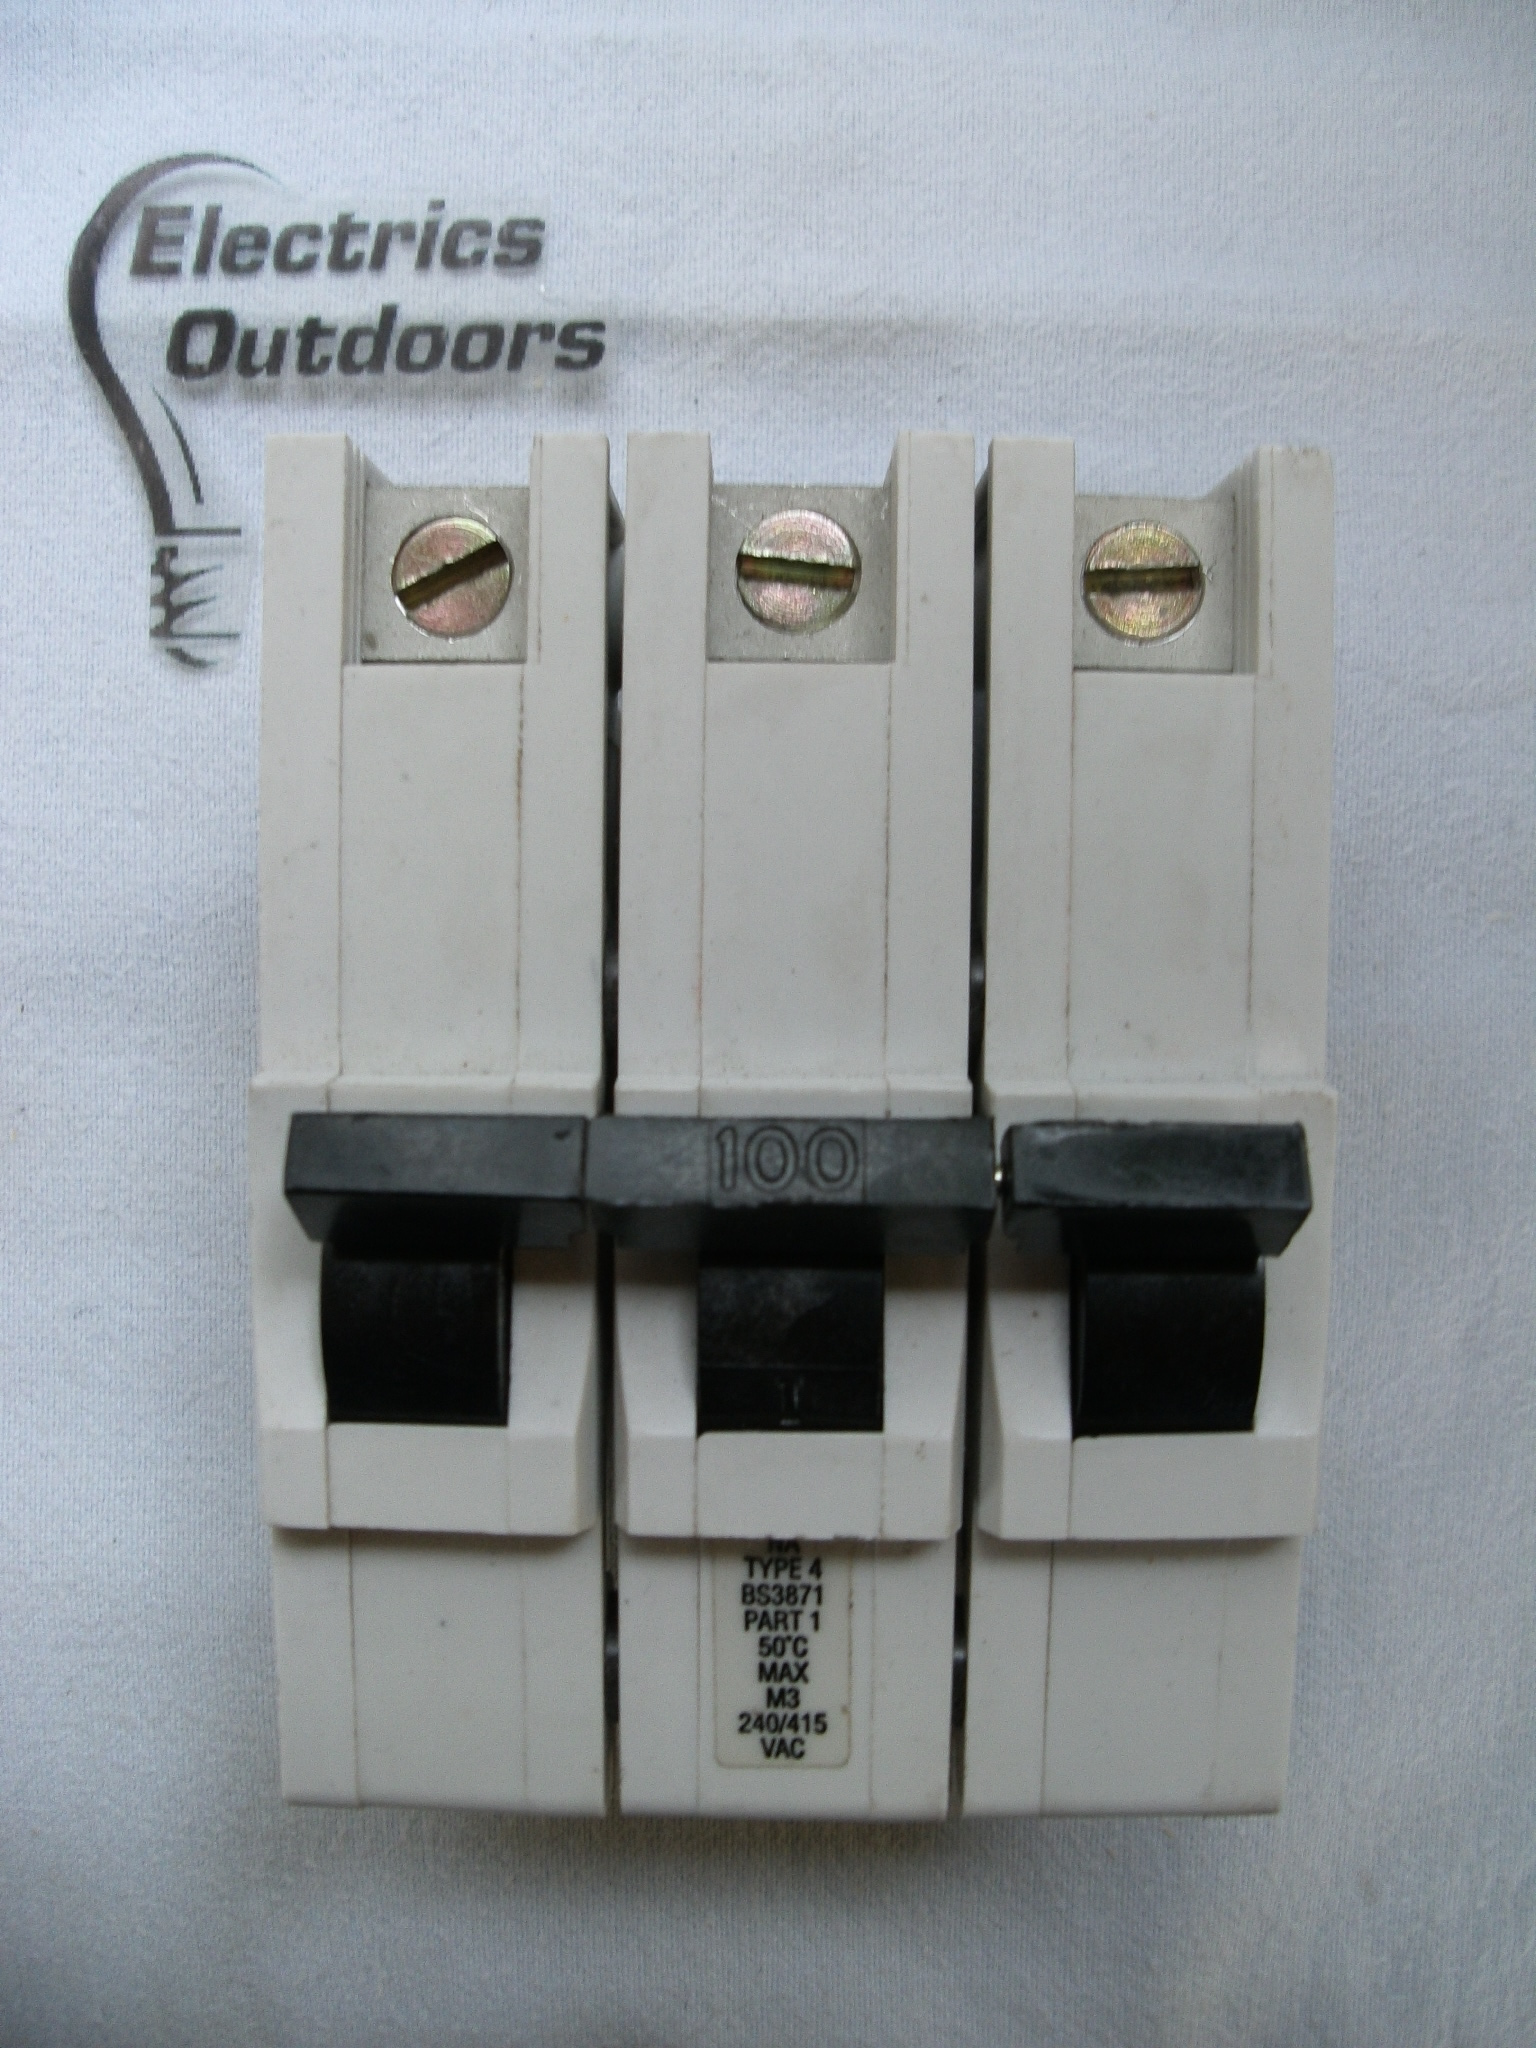 Newlec Circuit Breaker Specialists Light Switch Federal Electric 100 Amp Type 4 M3 Triple Pole Mcb Stablok Na 3